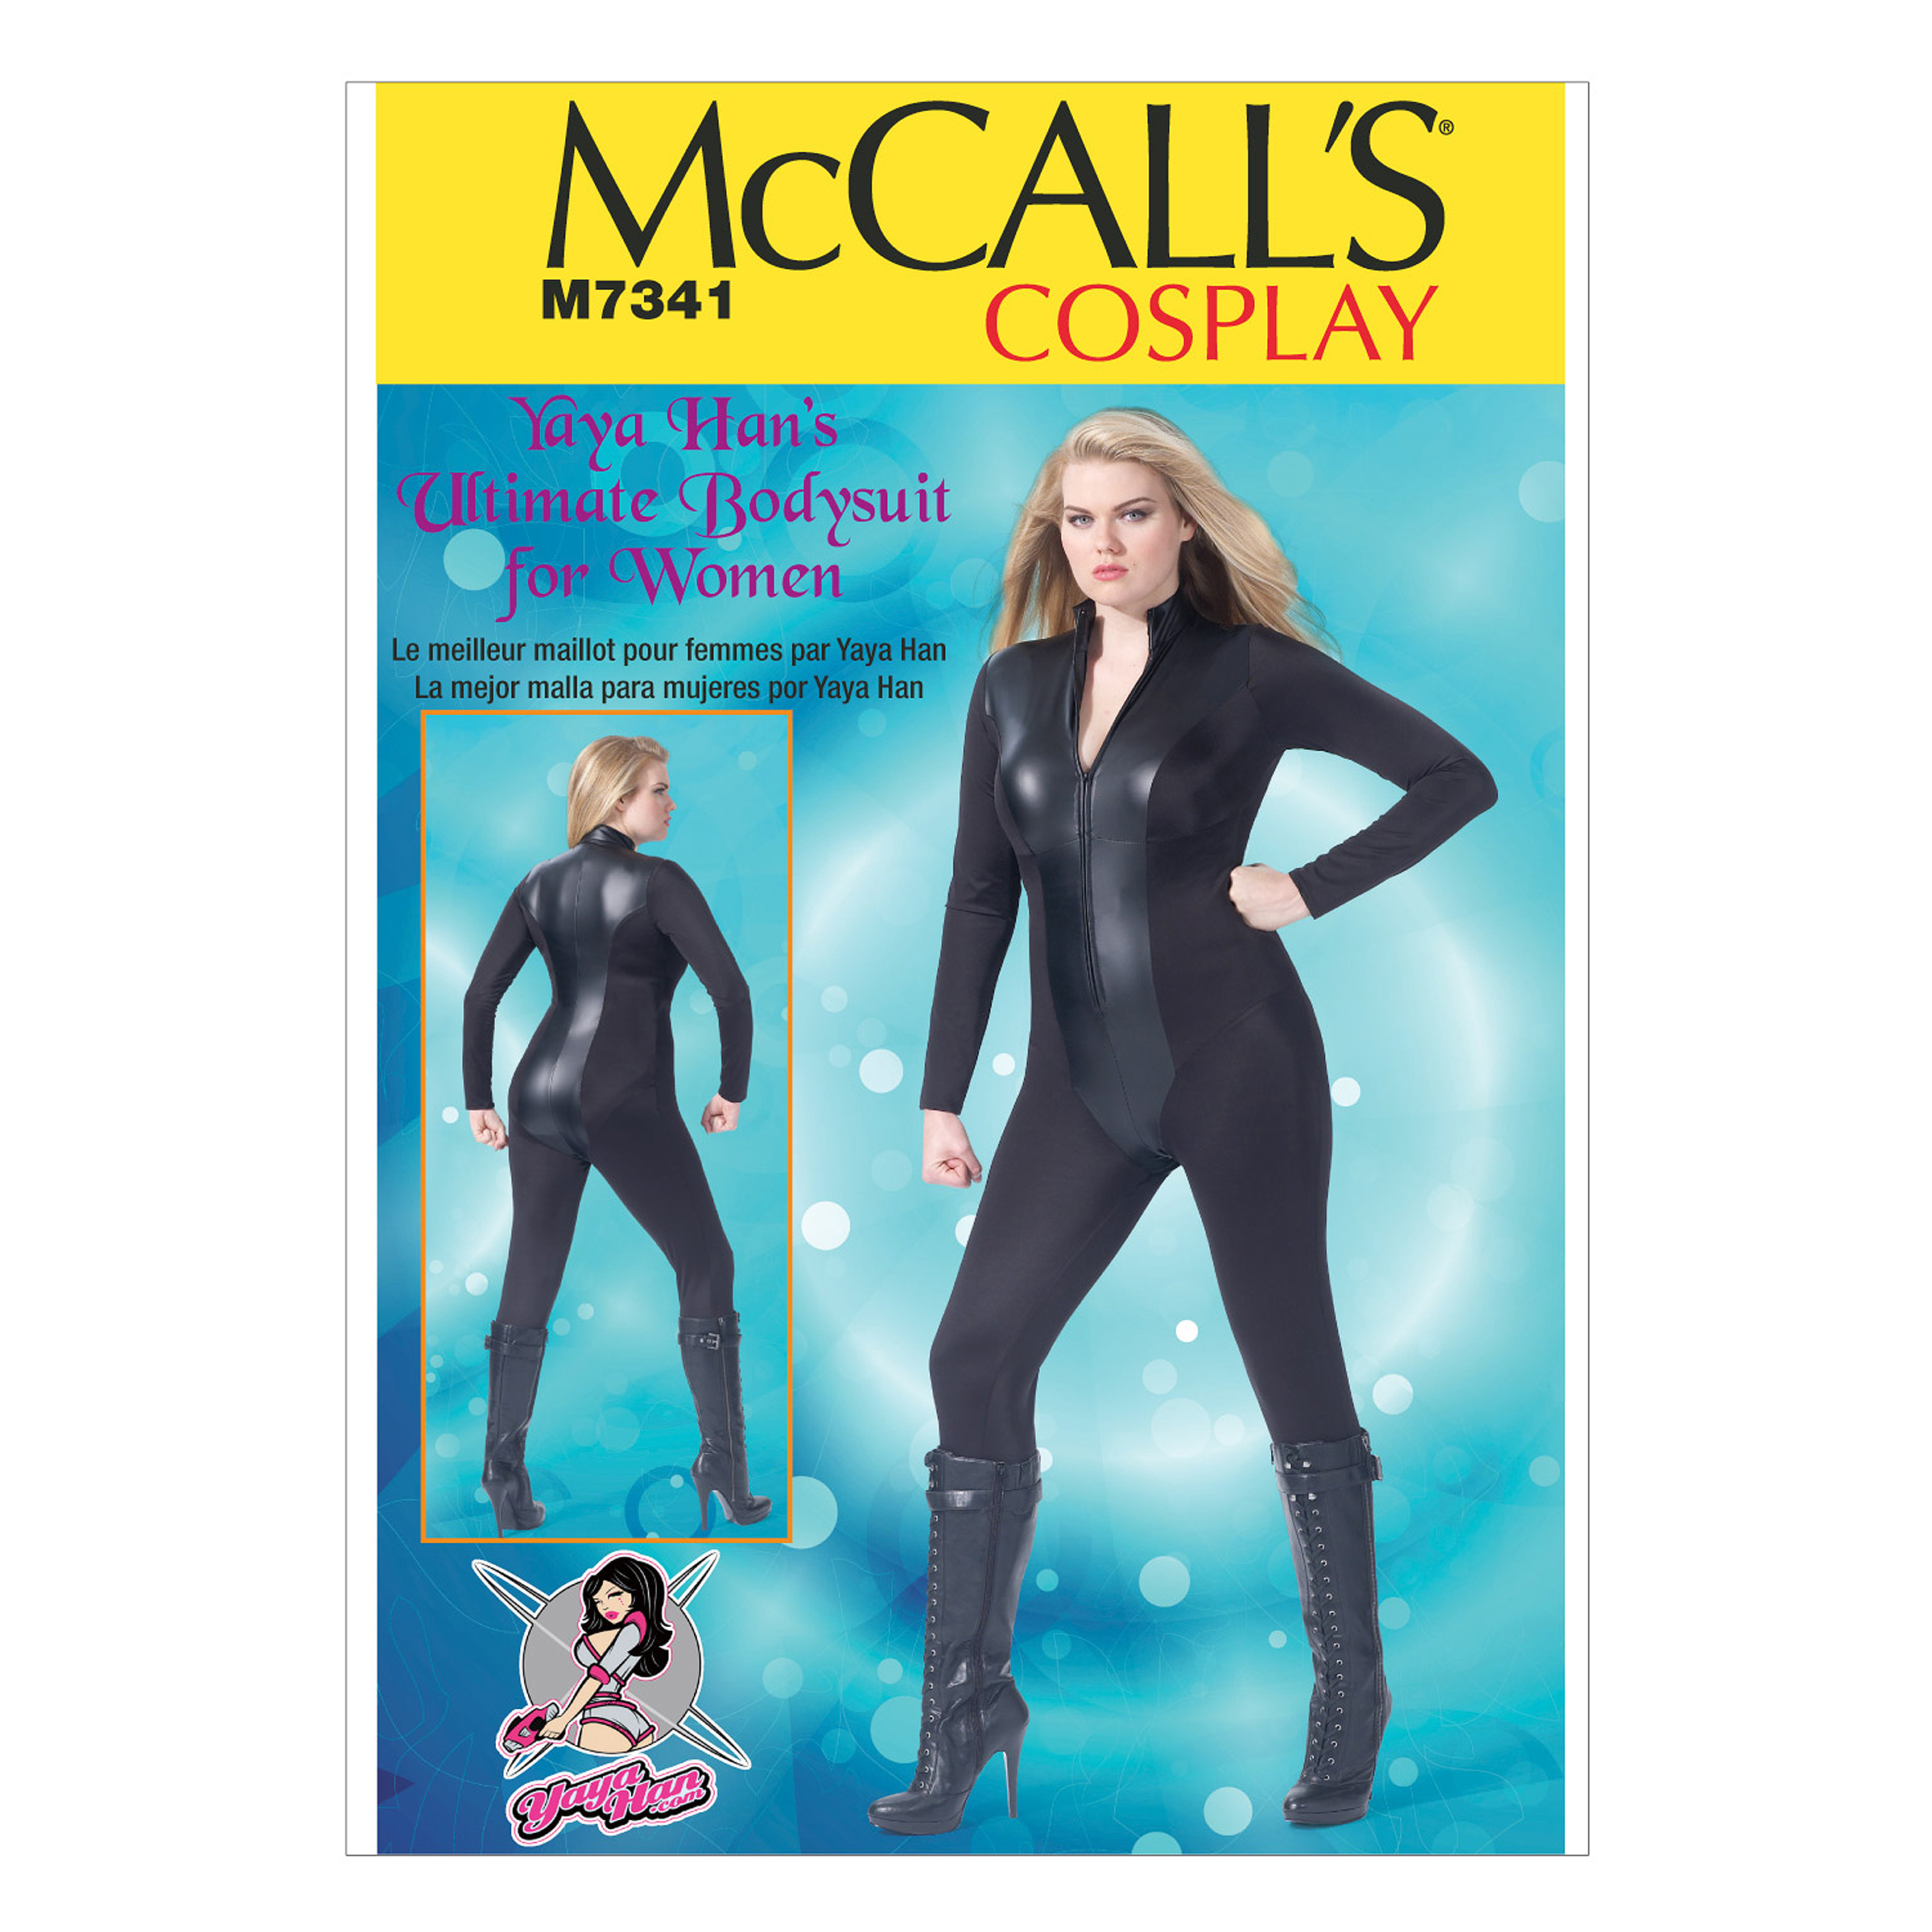 McCall\u0027s Pattern M7341-Women\u0027s Zippered Bodysuit by Yaya Han, Sizes 18w-20w-22w-24w